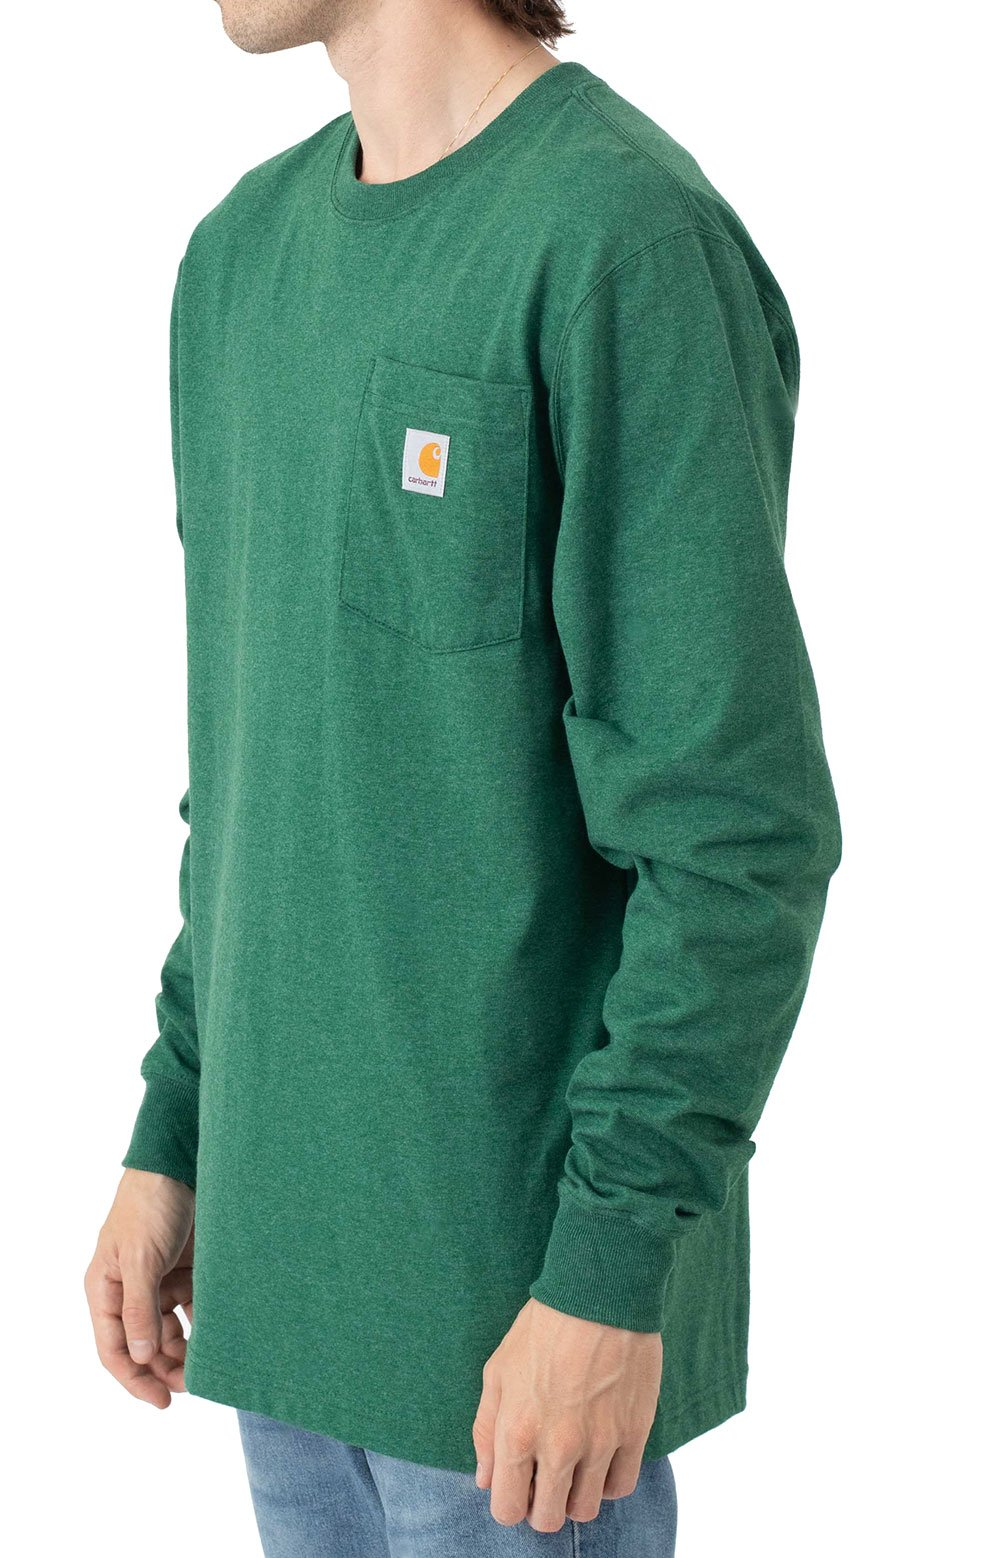 (104896) Loose Fit Heavyweight L/S Pocket Antler Graphic T-Shirt - North Woods Heather  3